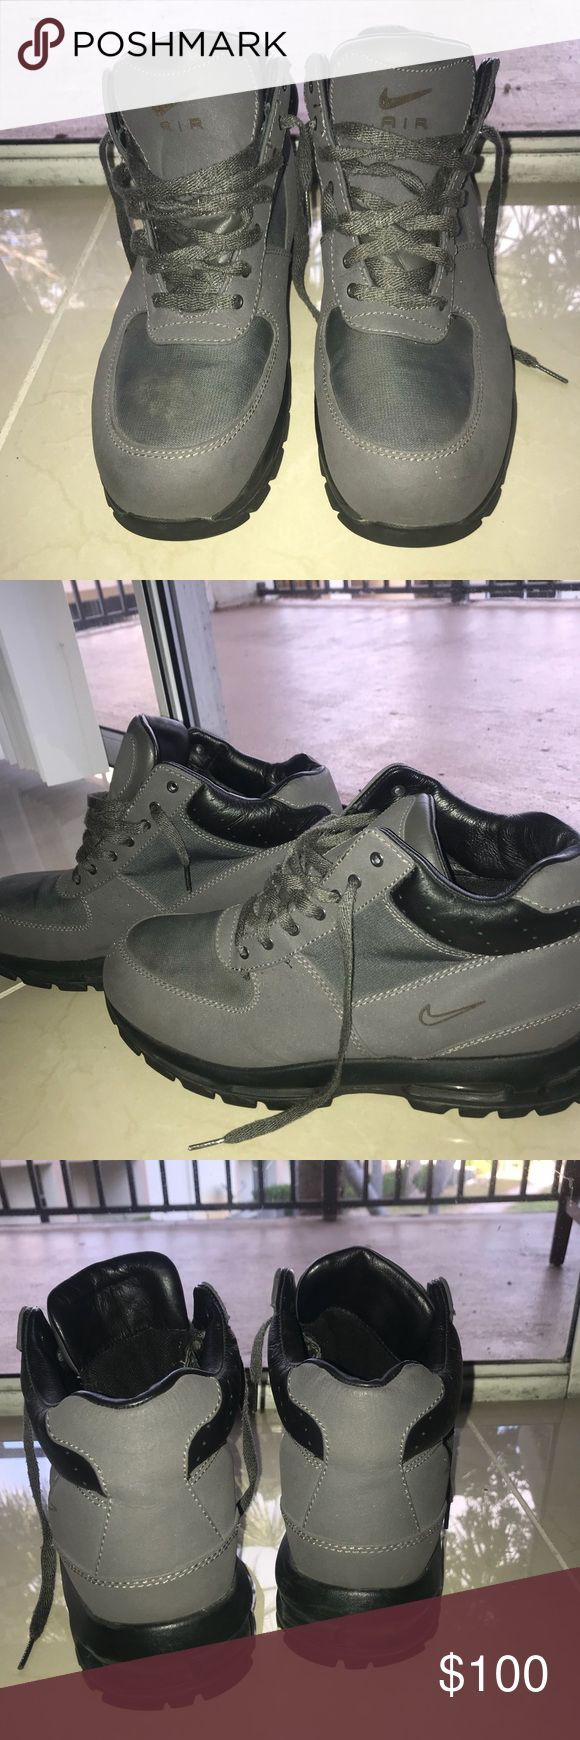 Nike grey acg boots Men's size 13 grey Nike acg boots, barley warn in spectacular condition. Nike Shoes Boots